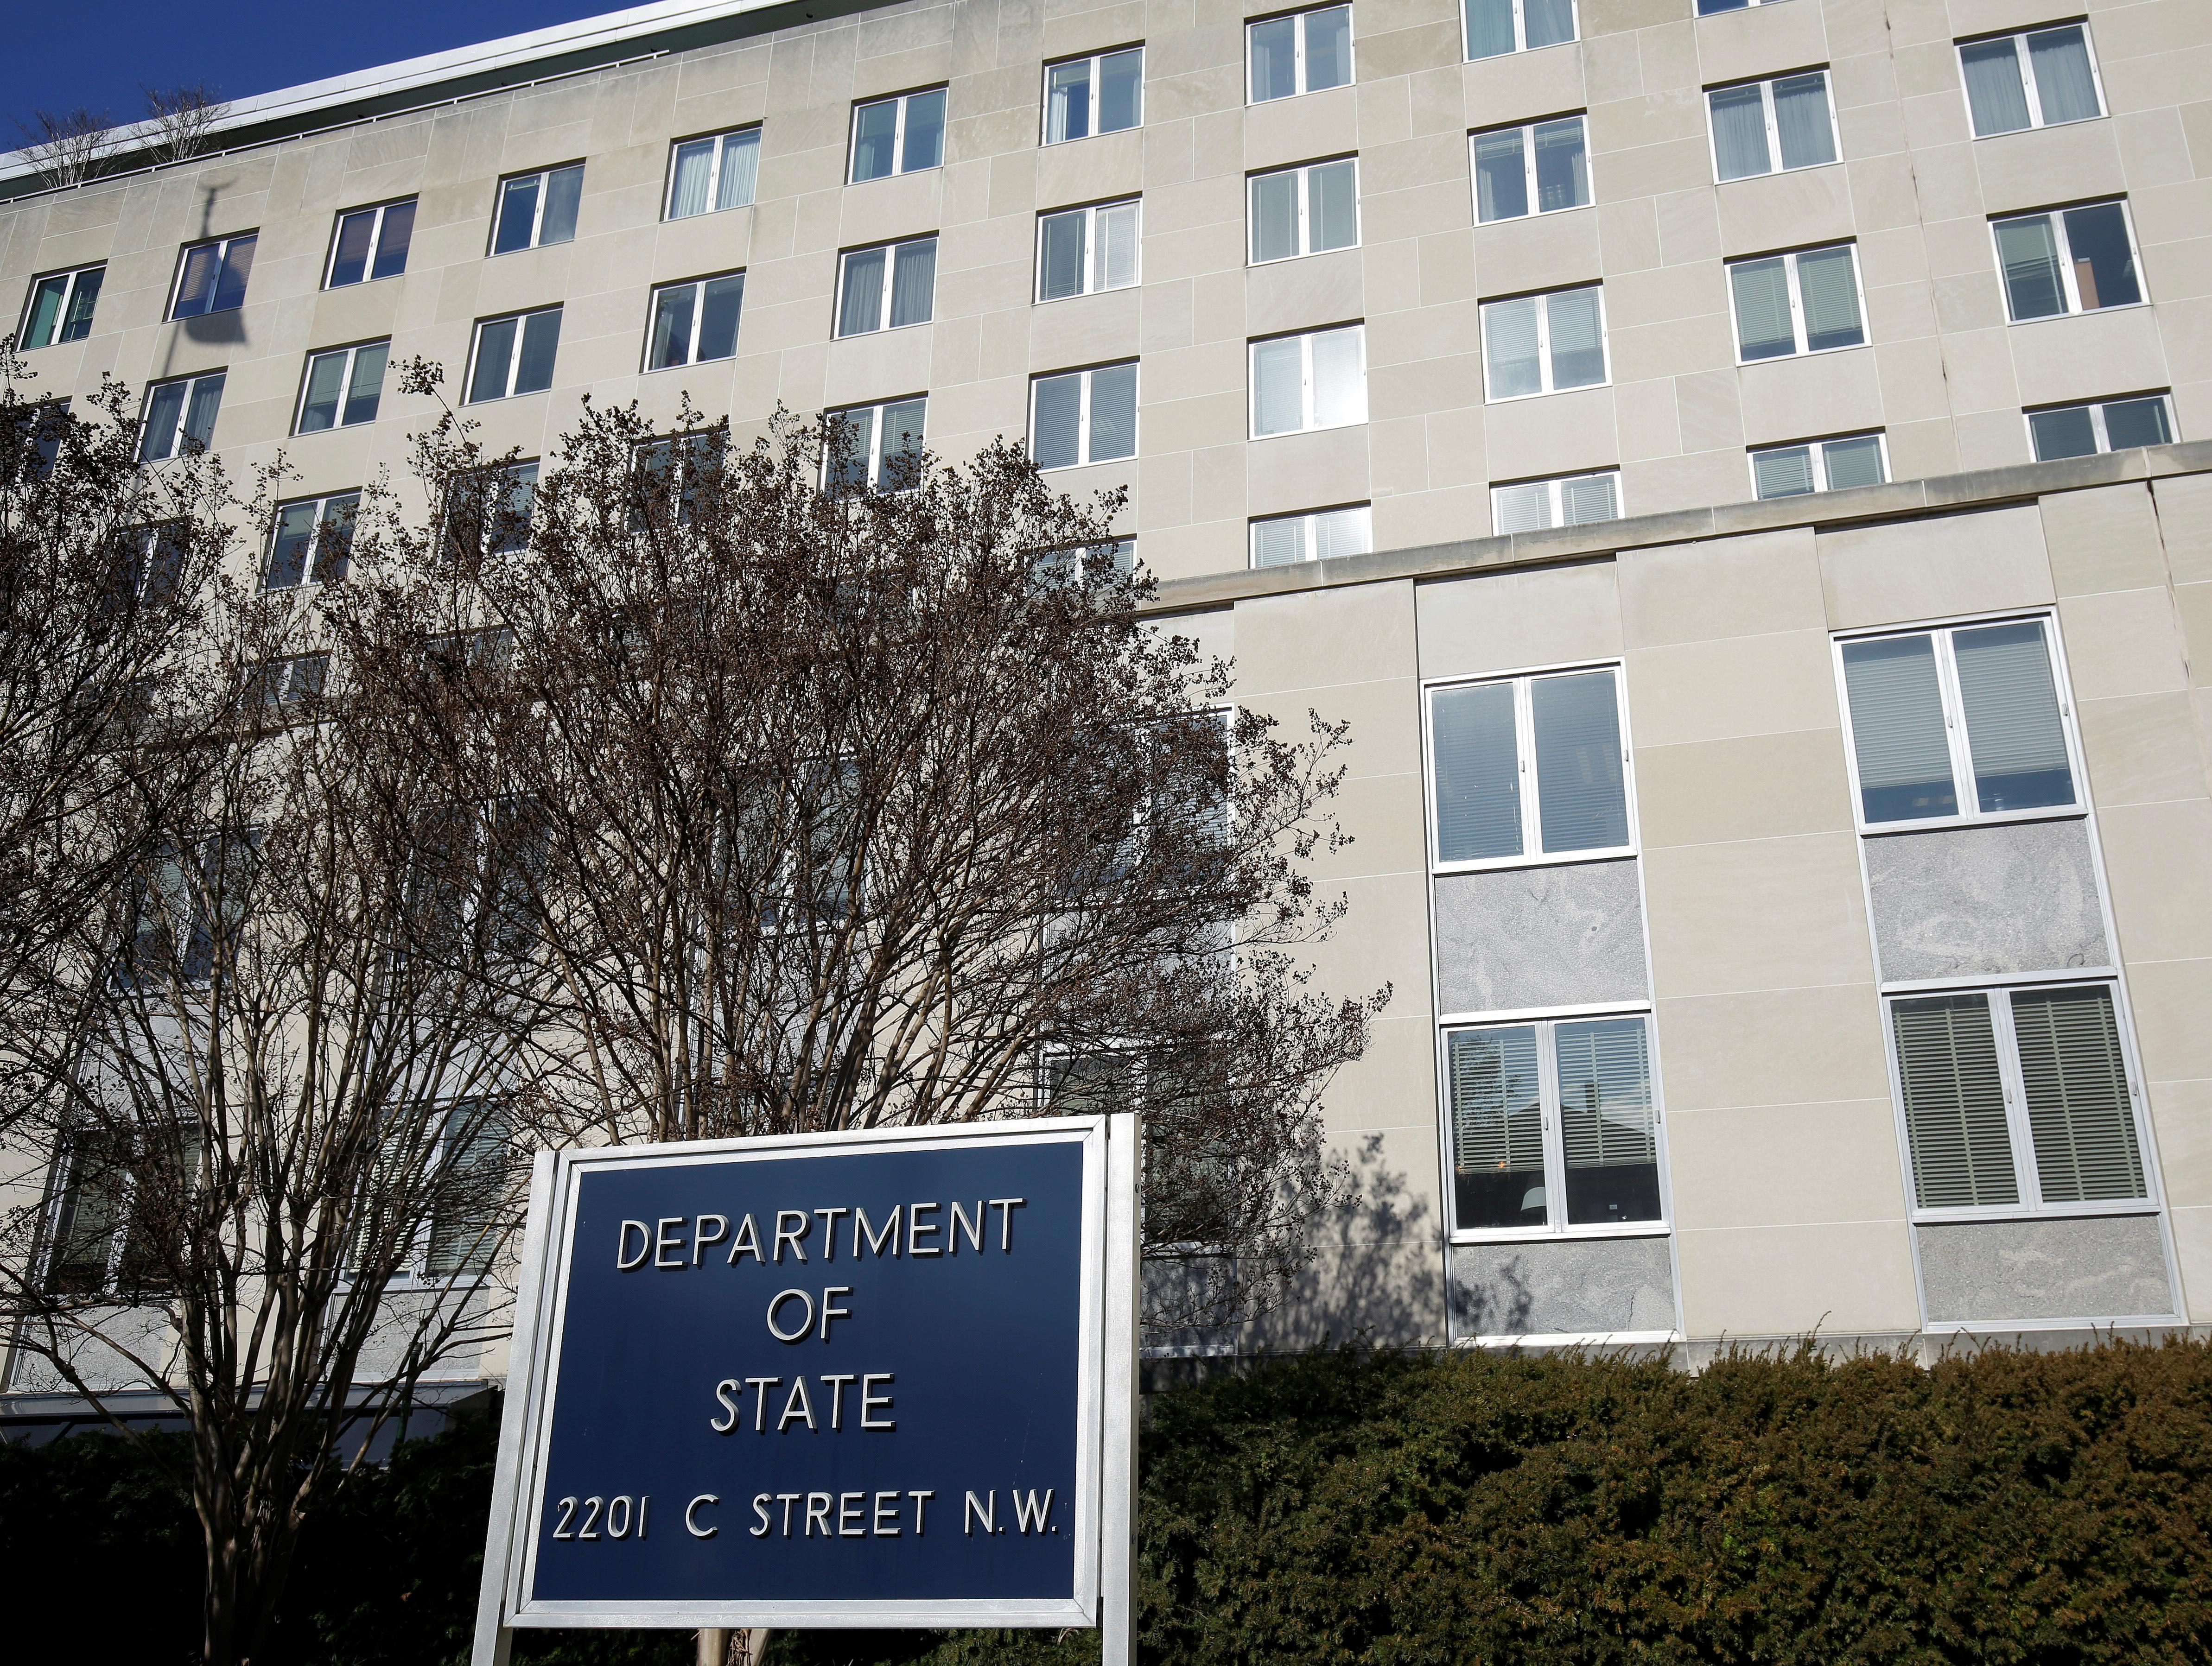 U.S. citizens warned over traveling to Saudi Arabia: State Department